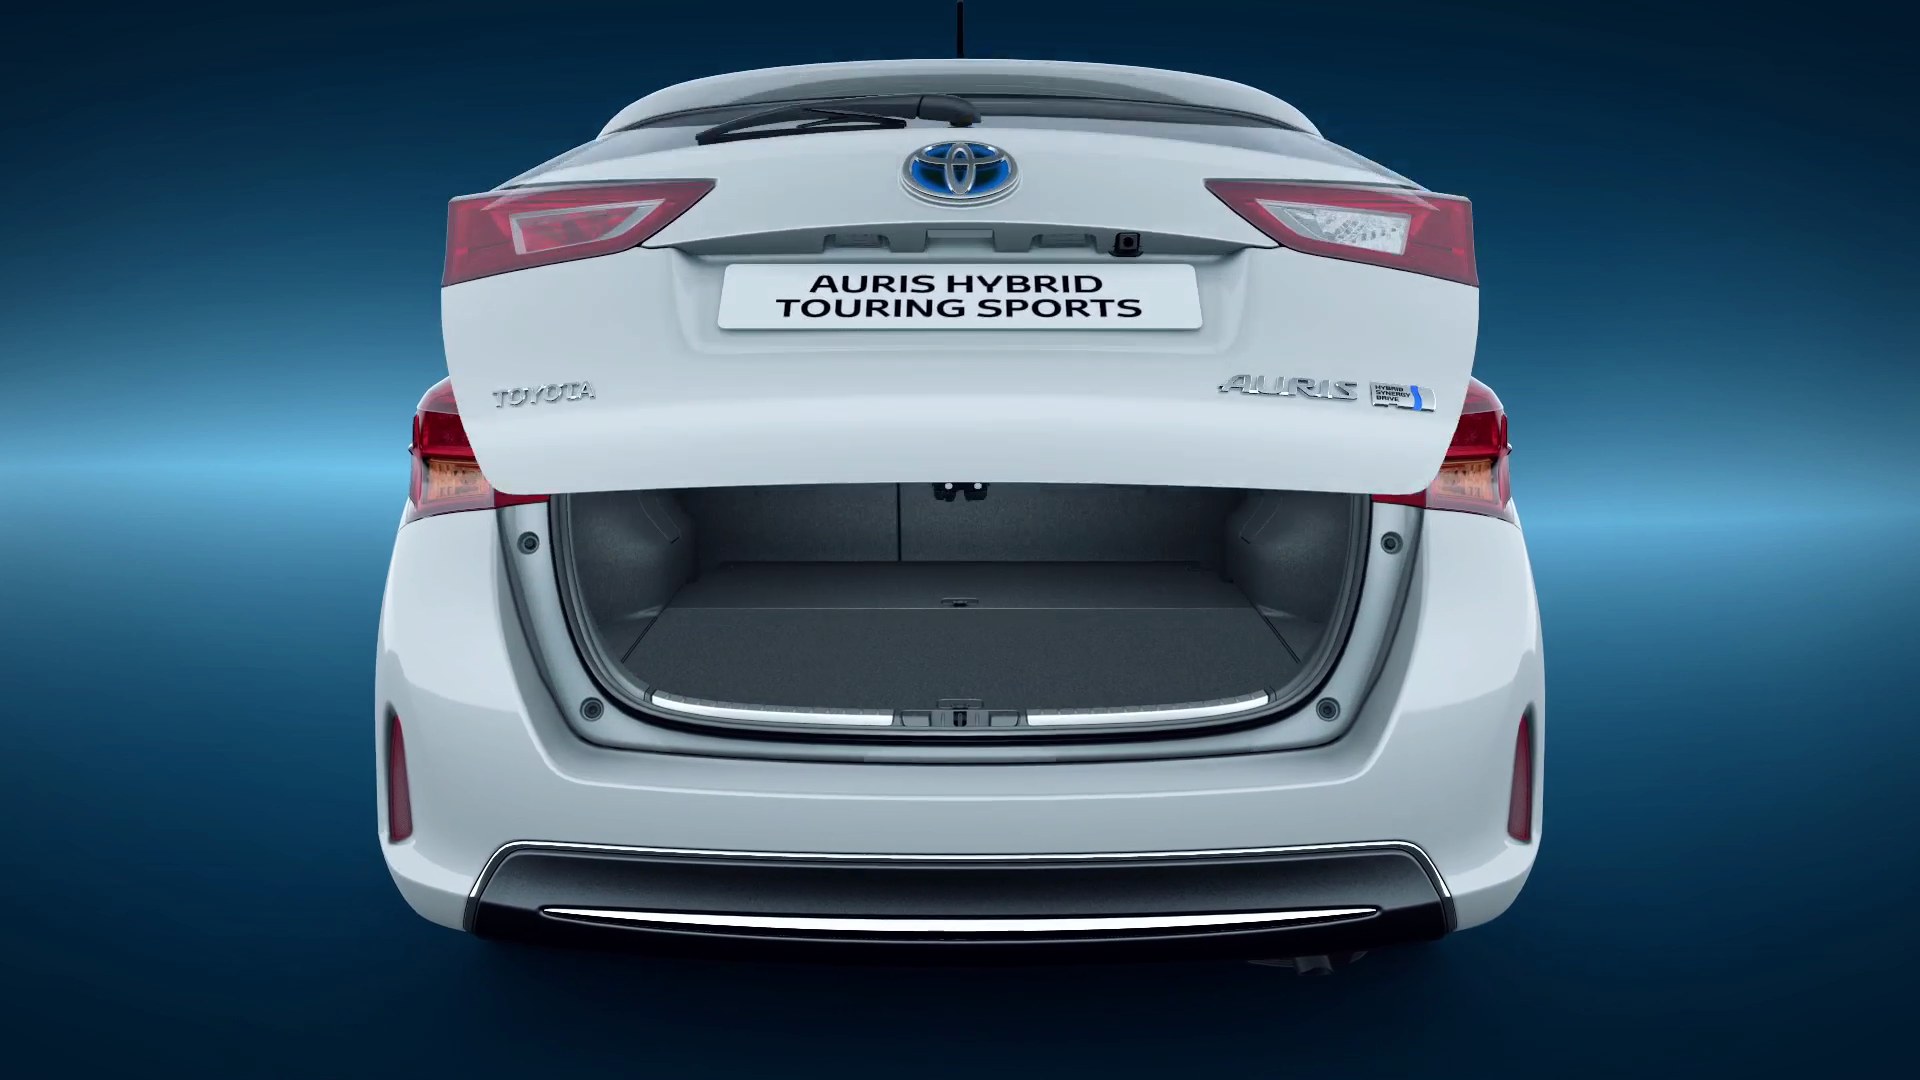 Auris Hybrid Touring Sports Functionality Without Captions